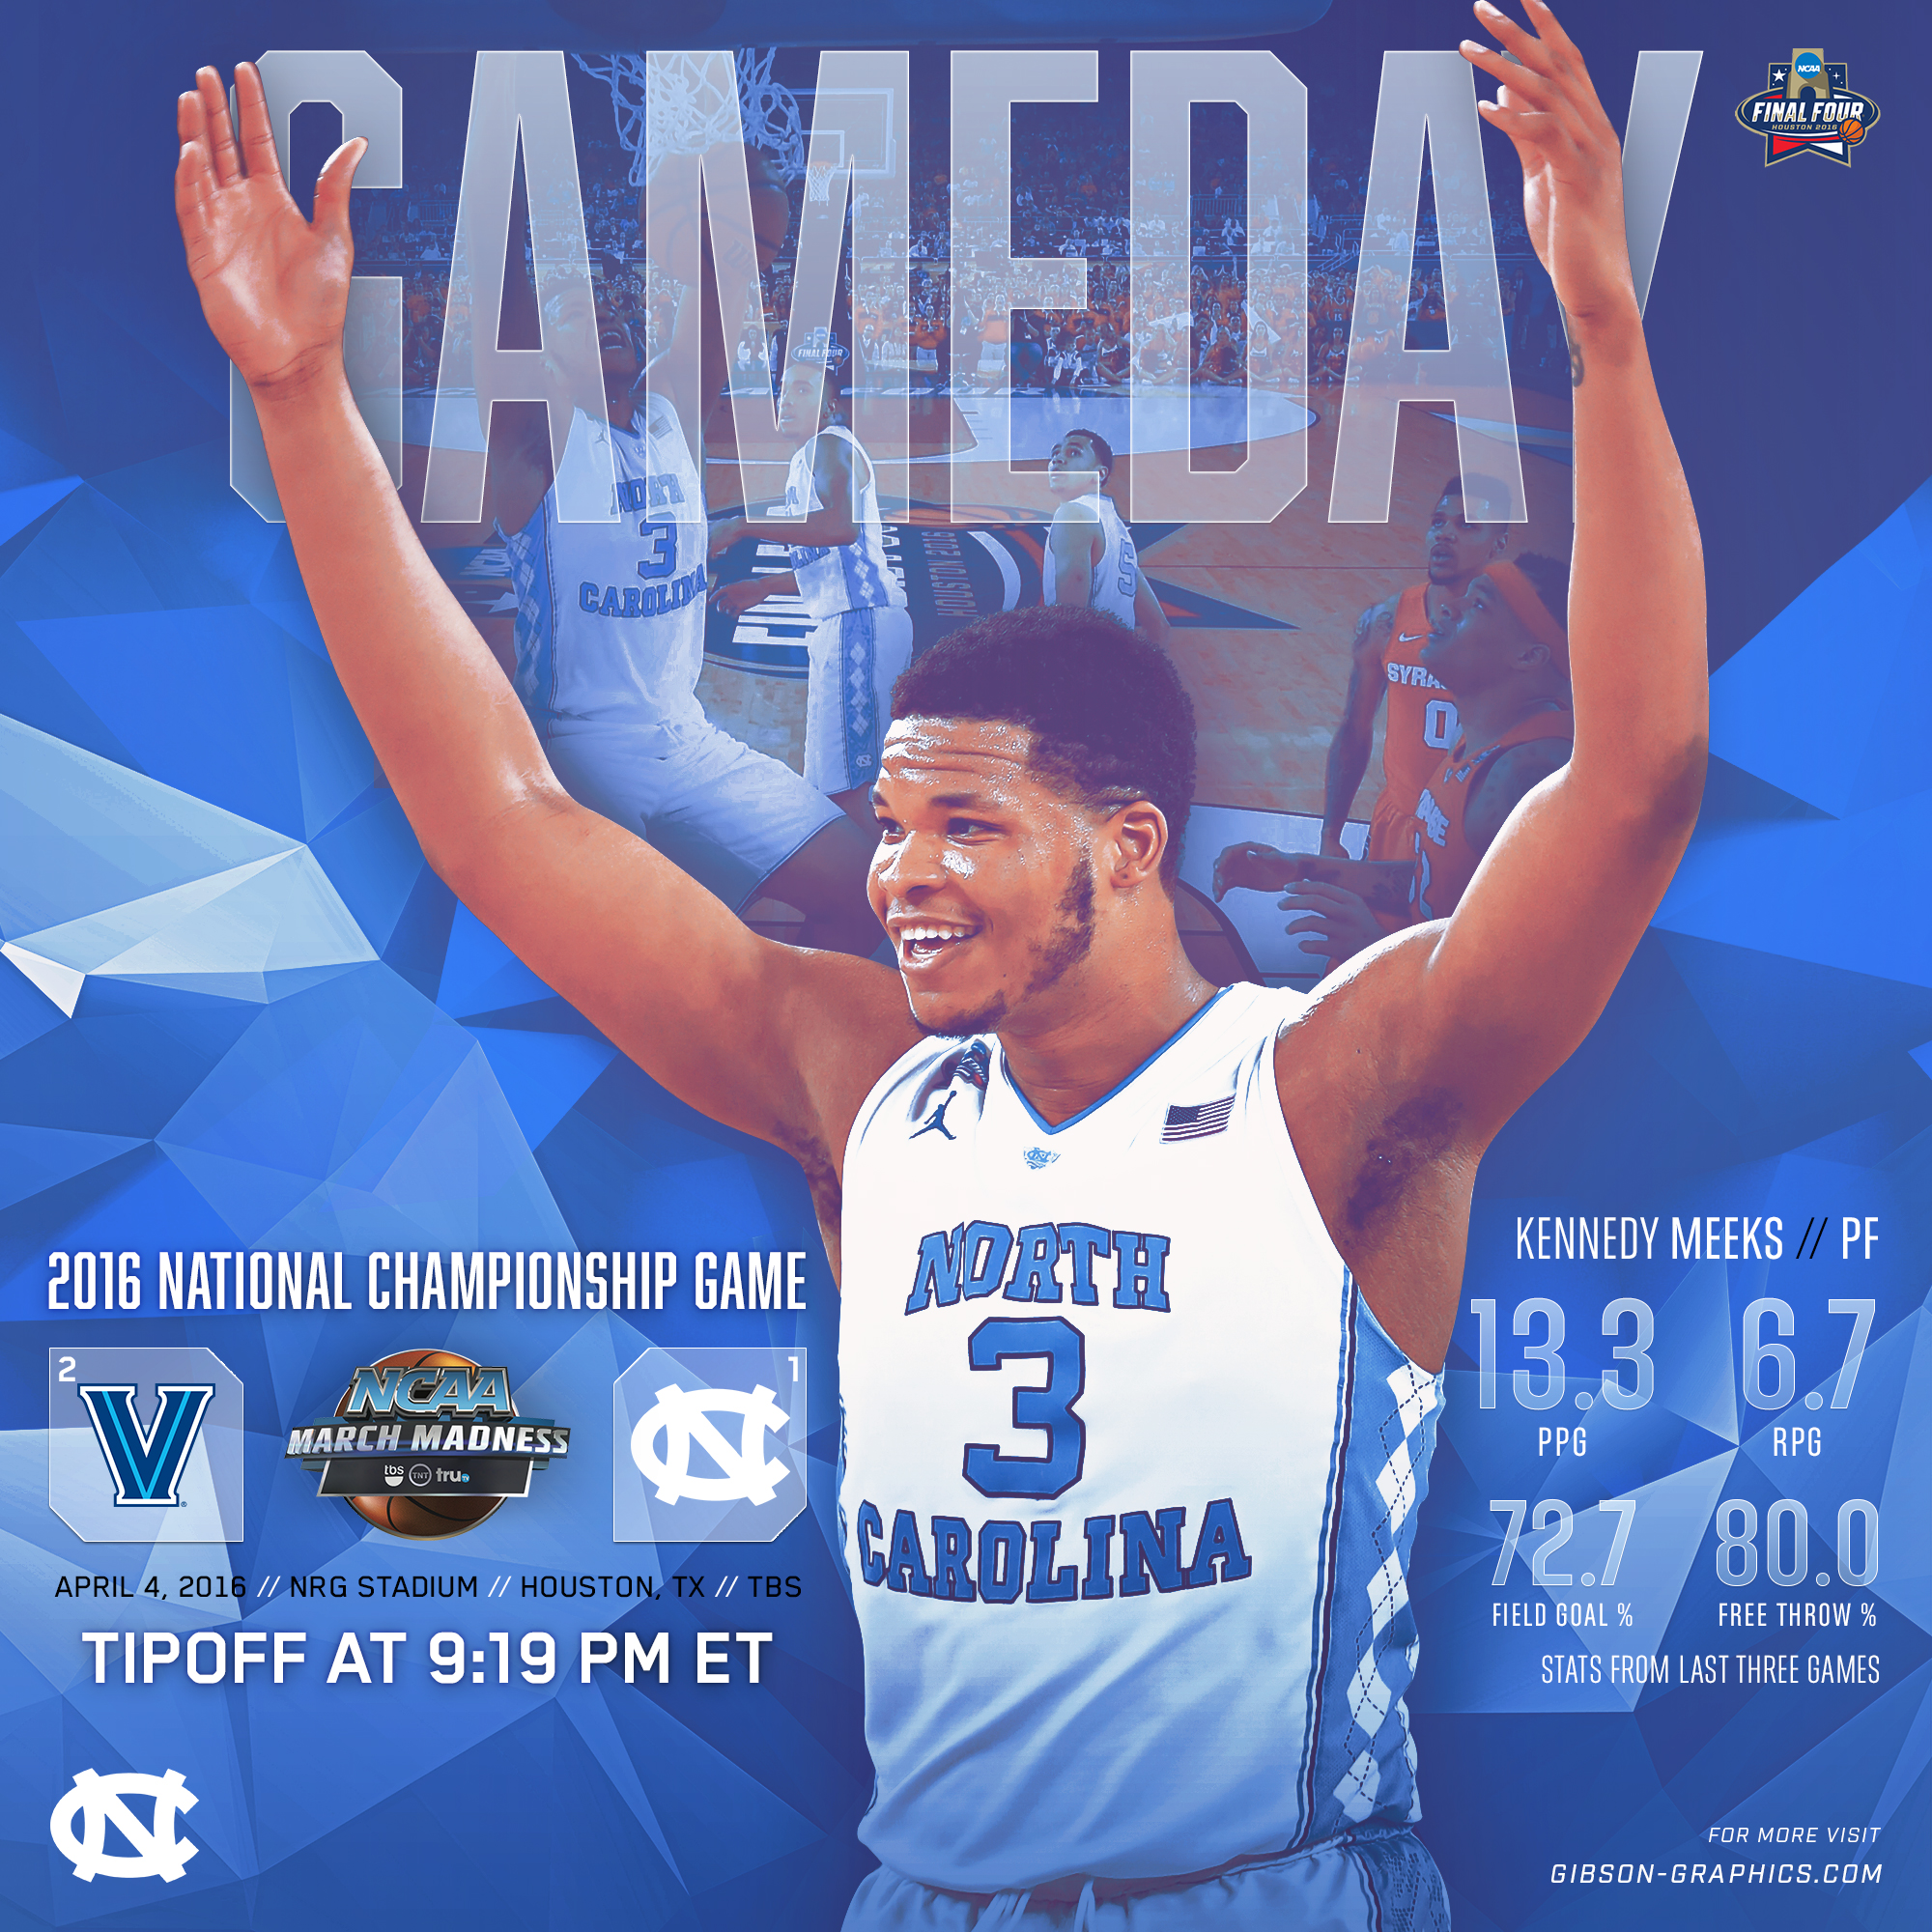 Kennedy Meeks 2016 National Championship Game